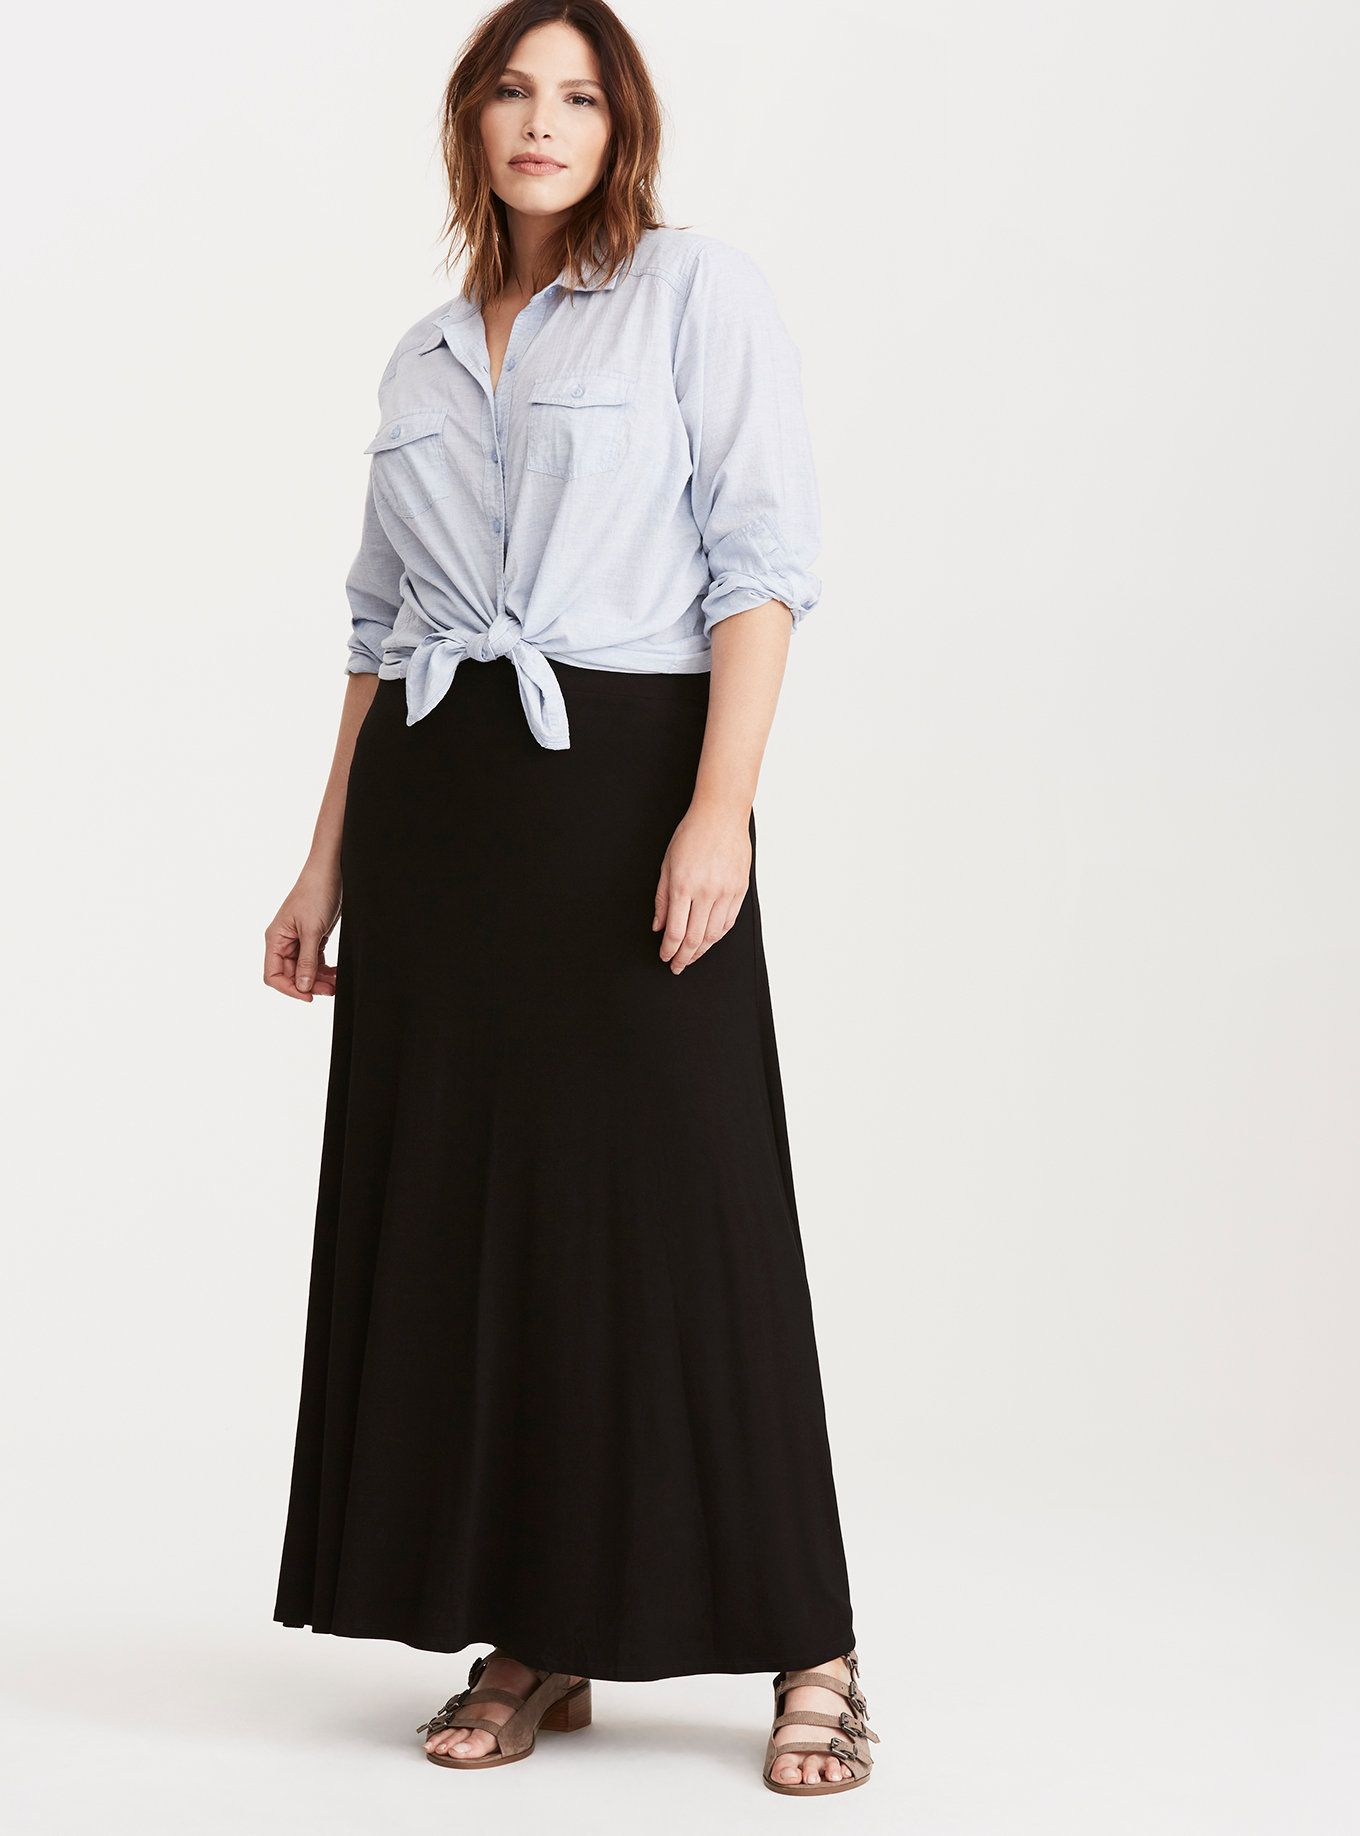 2b31dc885 A black knit maxi skirt is nonnegotiable in your closet - aka you need one  like now. This black jersey knit style is lightweight, with a sweeping  length ...